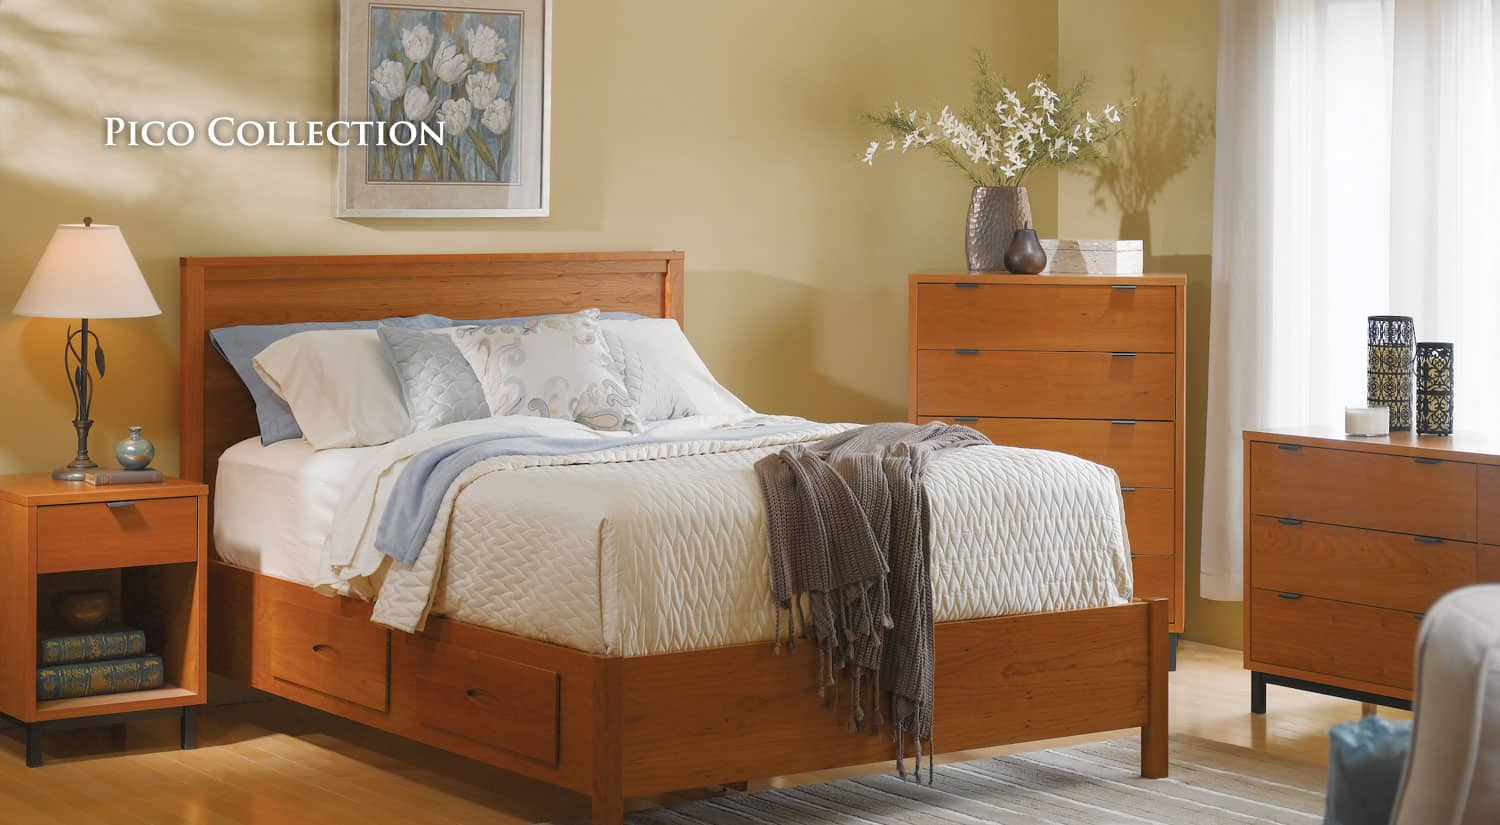 solid wood furniture | bedroom furniture, cherry furniture